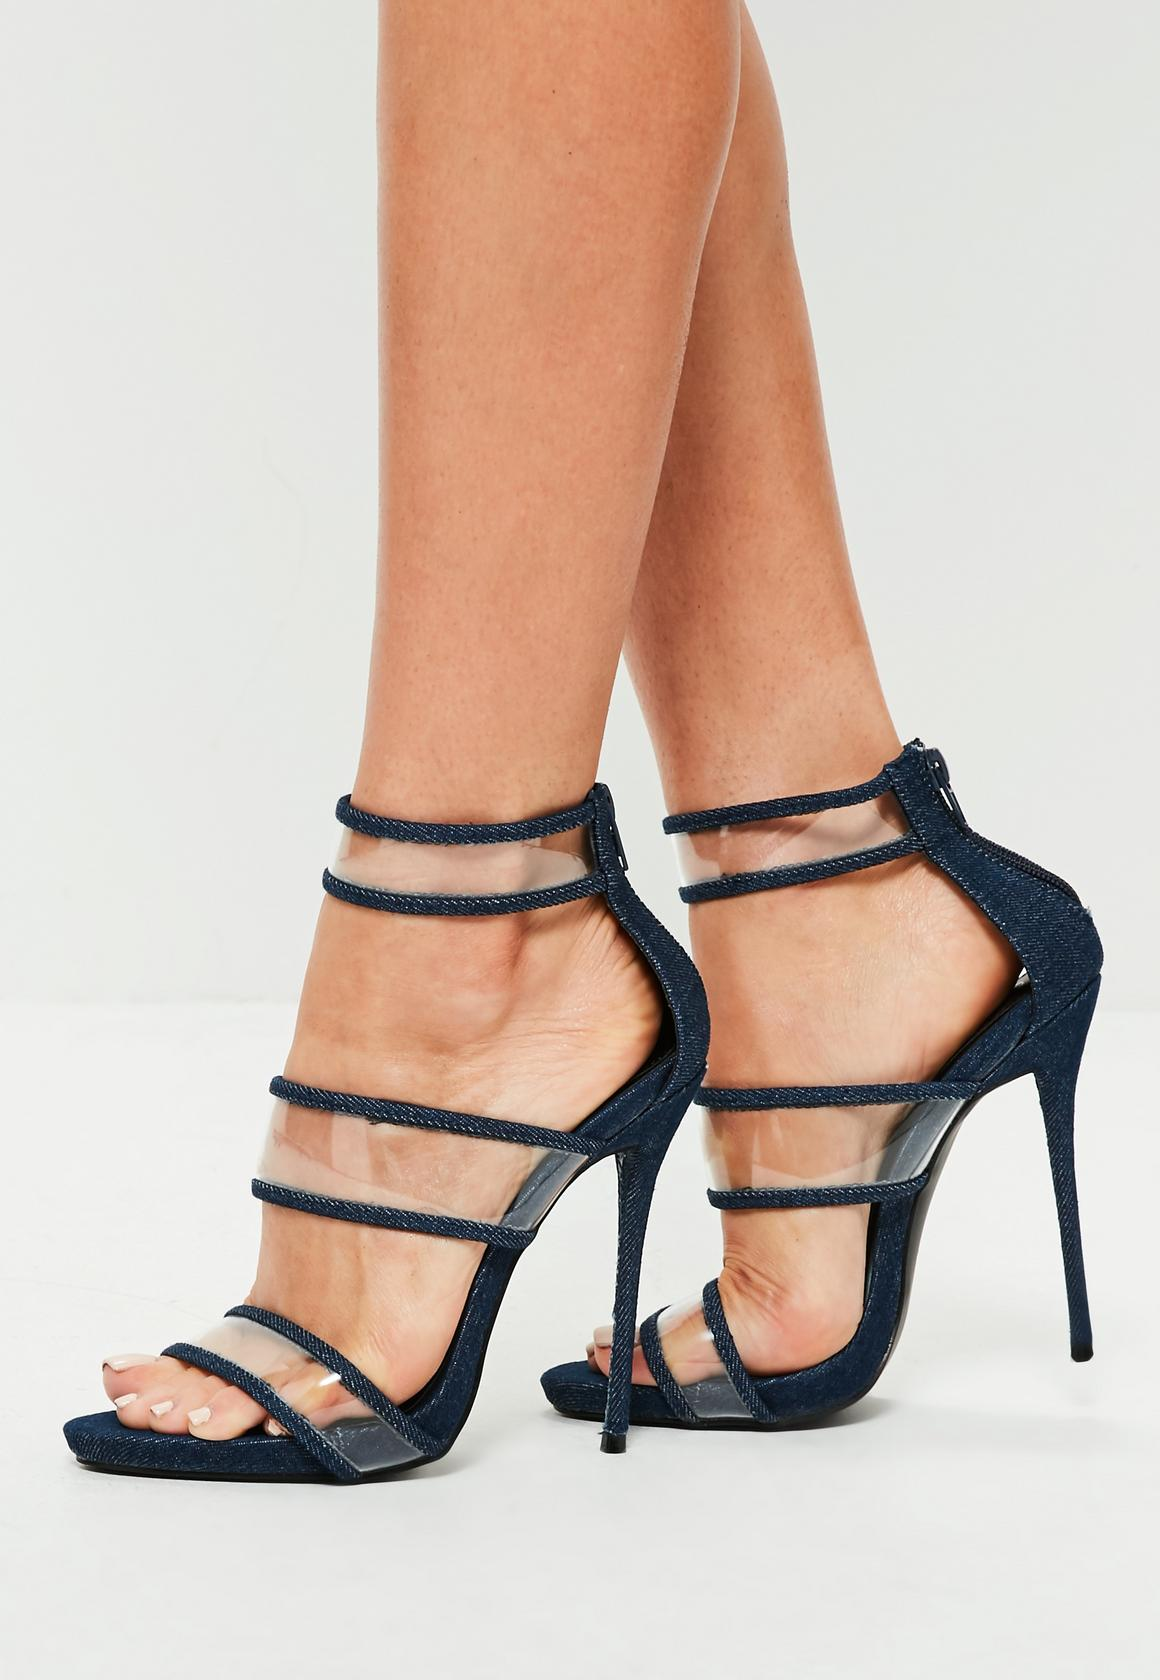 blue denim strappy clear high heel sandals asoqsdn